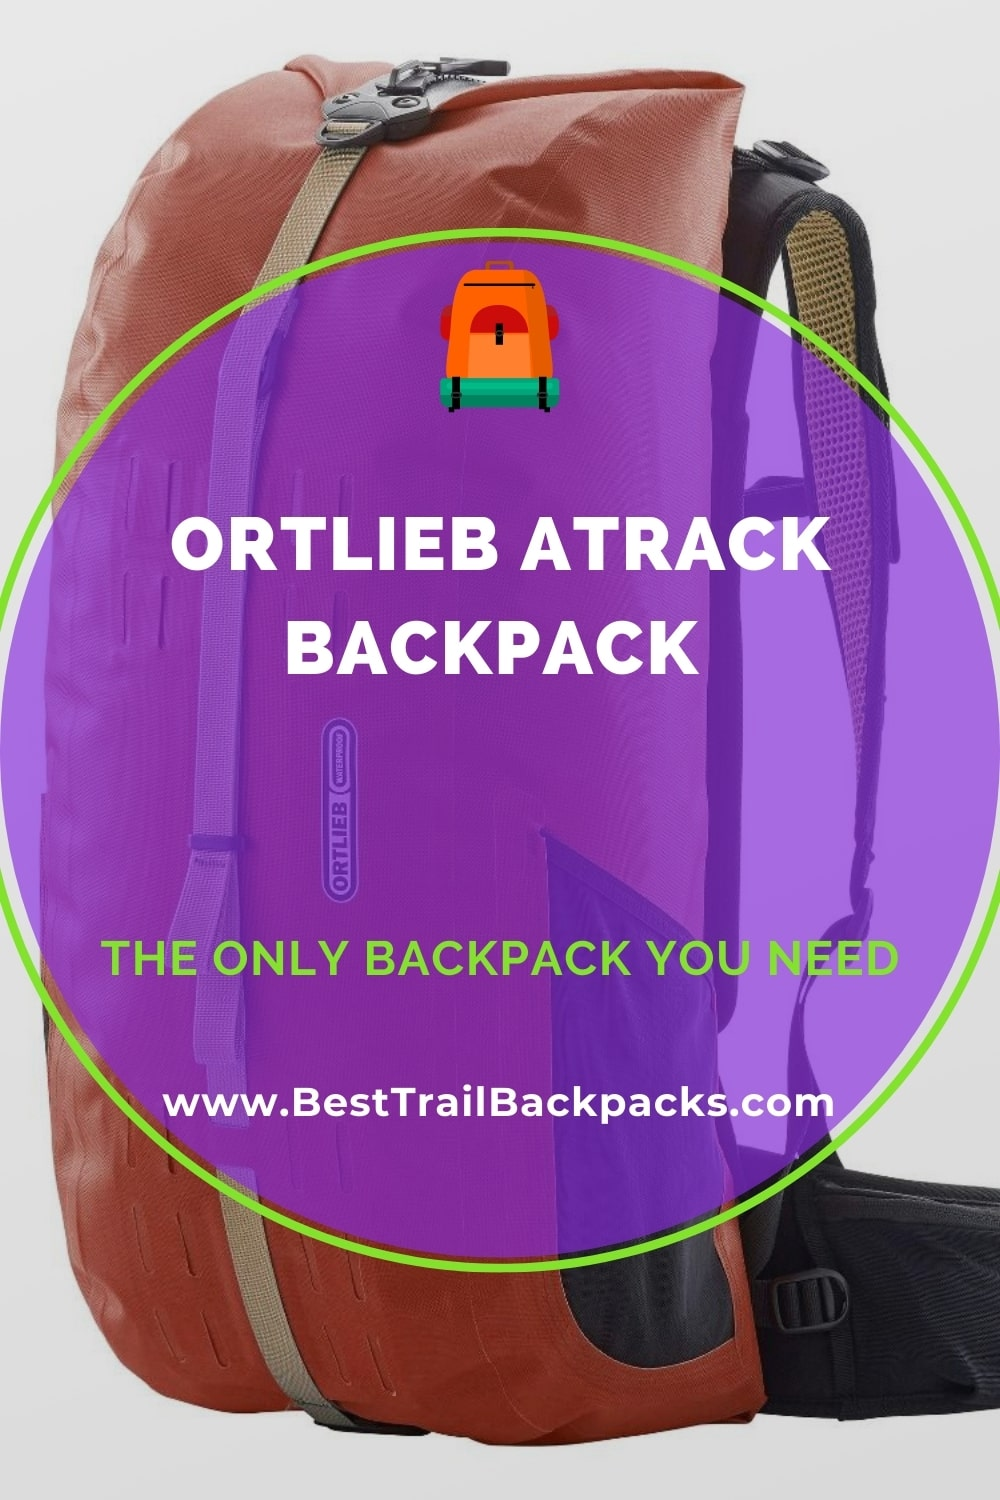 Ortlieb Atrack Backpack - Front View